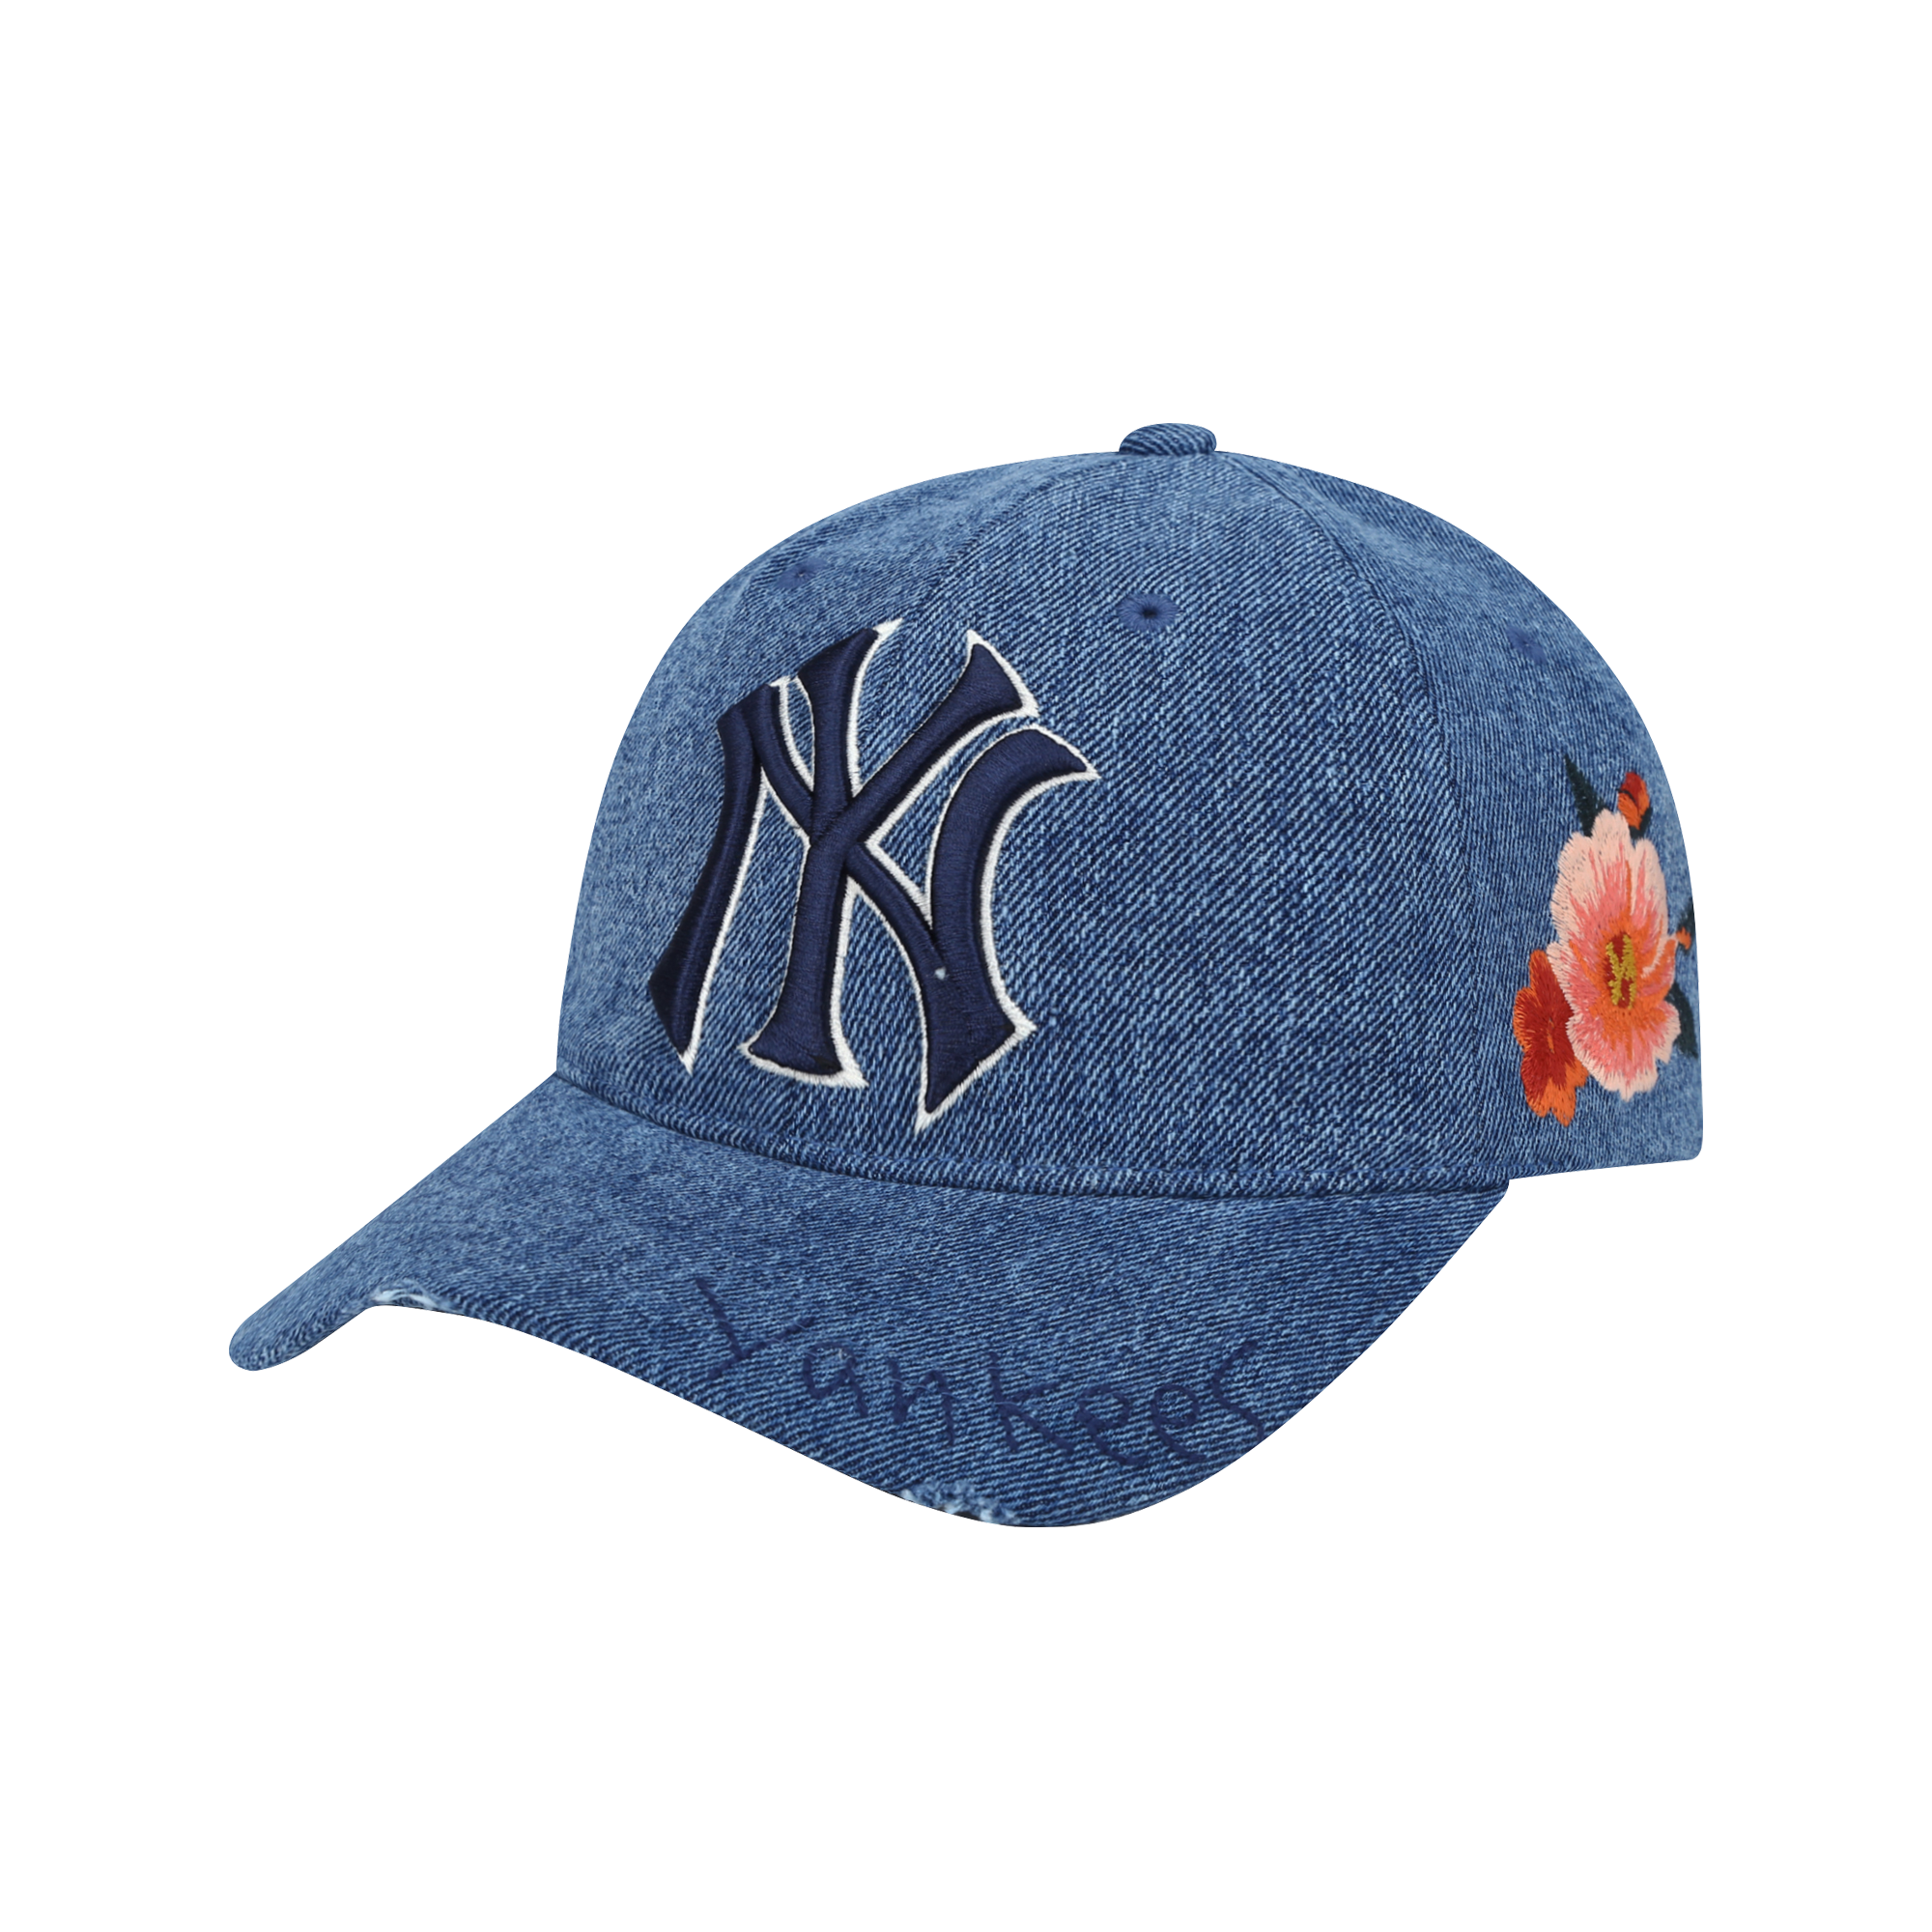 NEW YORK YANKEES ROSE GARDEN BALL CAP